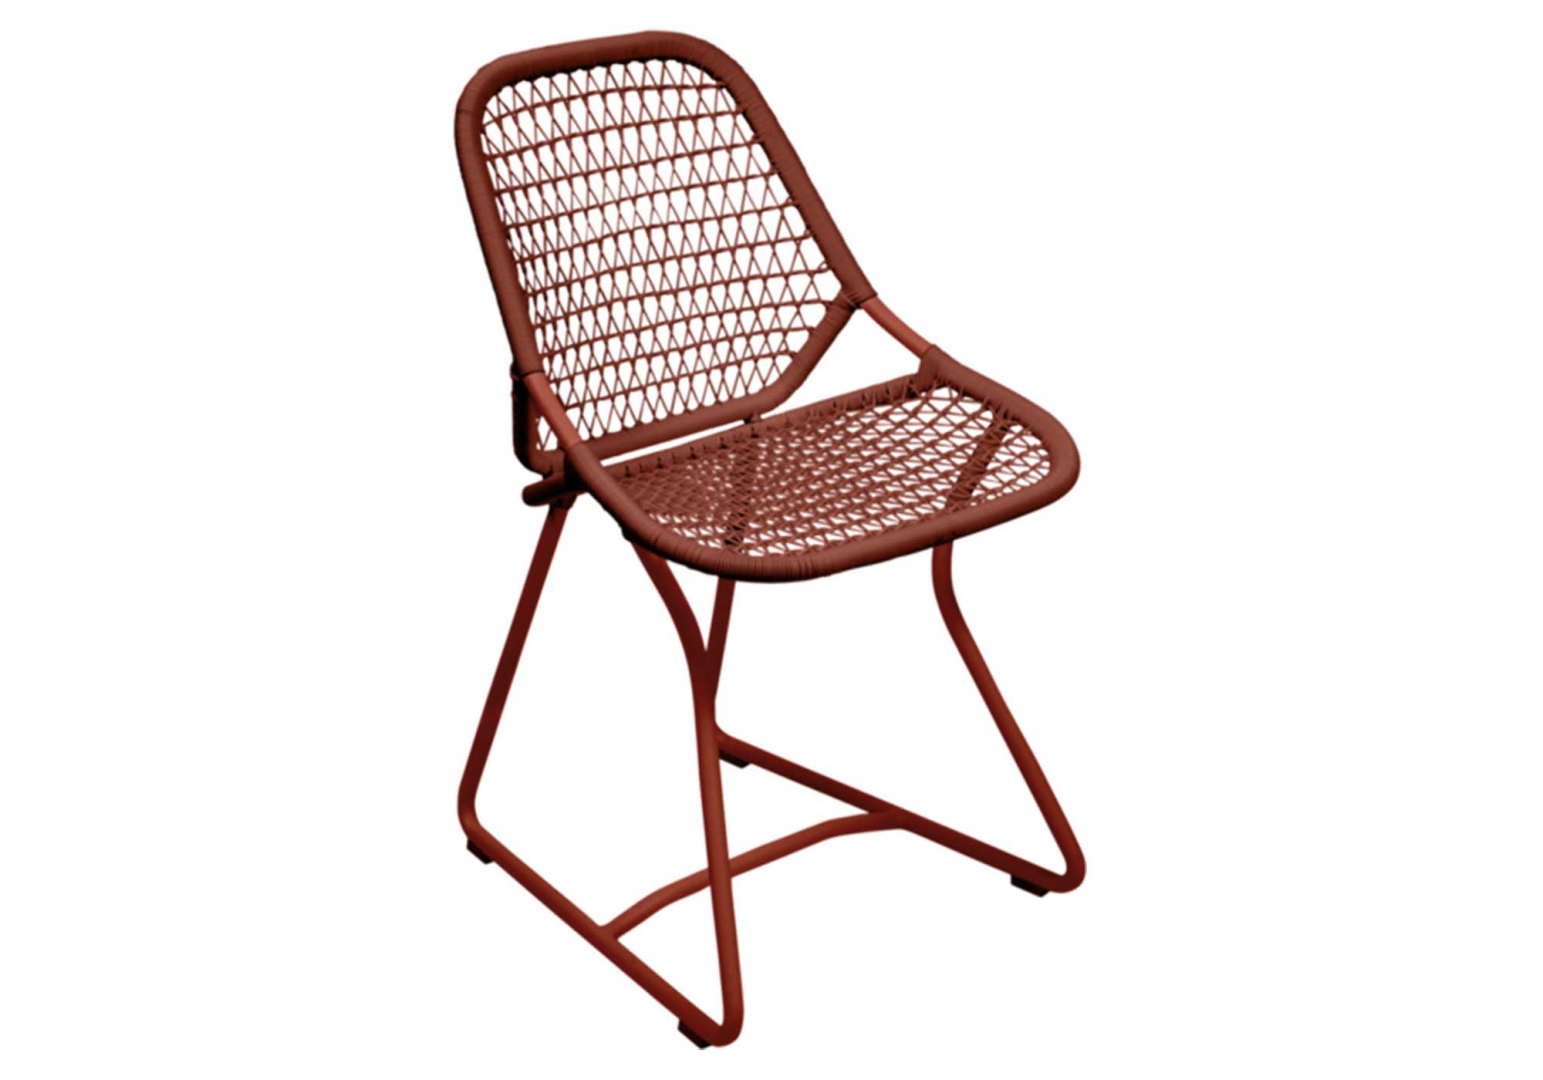 chaise outdoor design sixties fermob